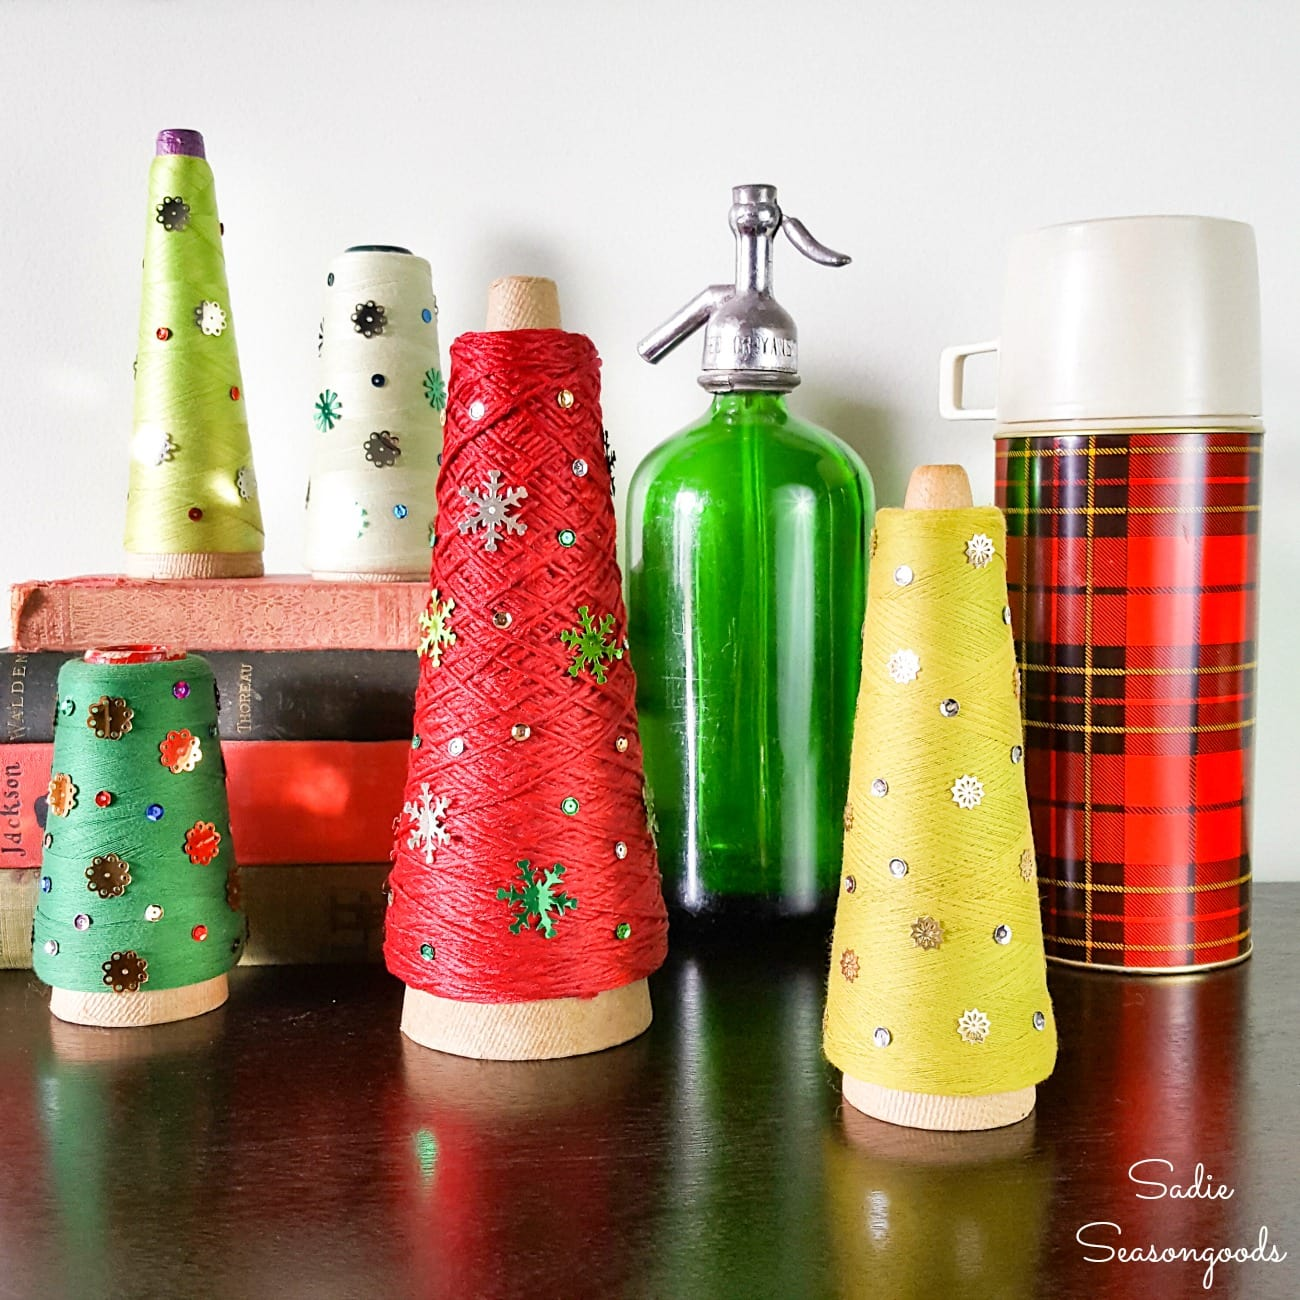 Christmas craft project with serger thread cones